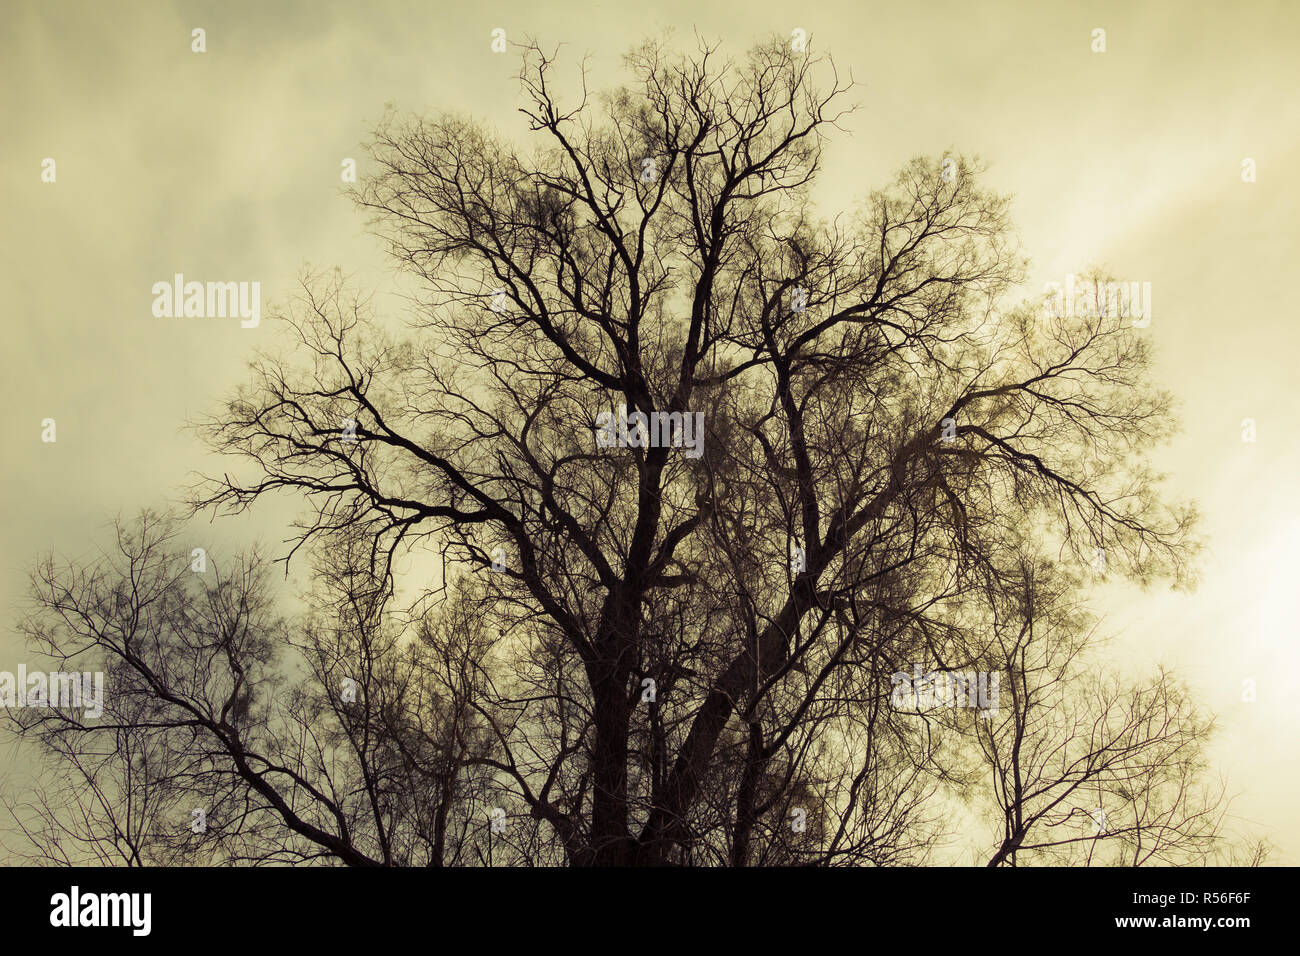 Silhouette of bare tree - yellow tone - Stock Image